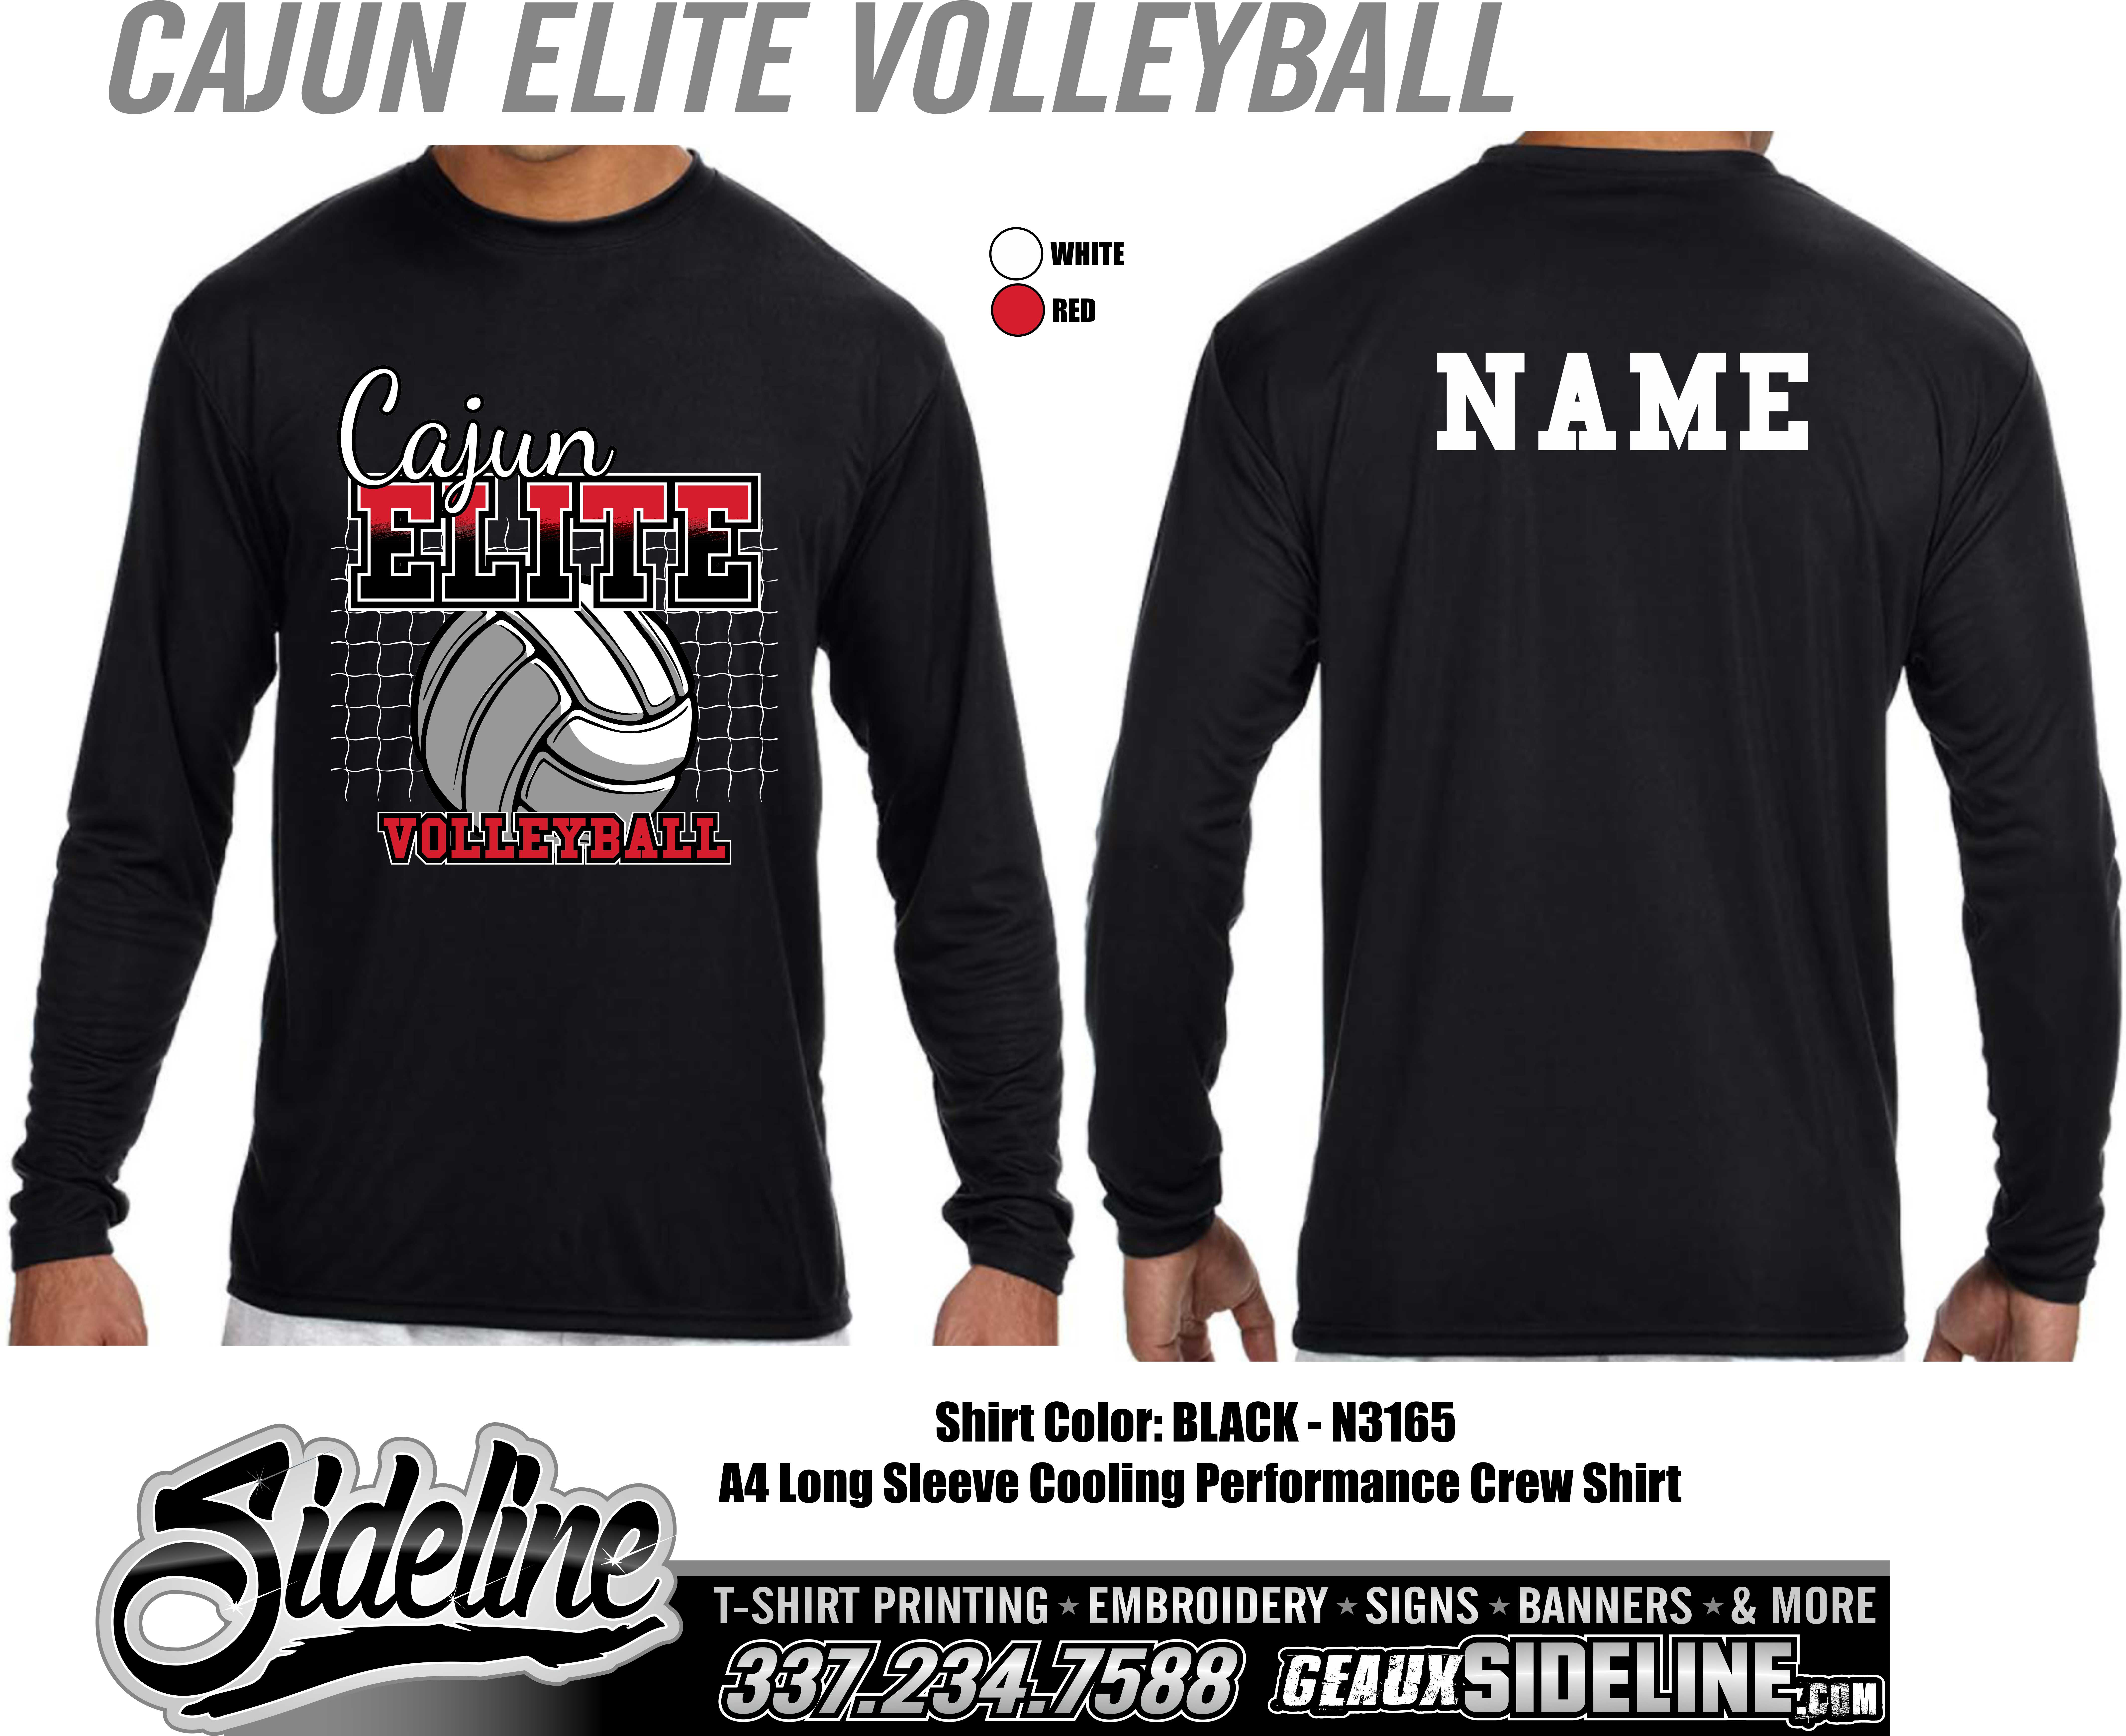 CAJUN ELITE VOLLEYBALL